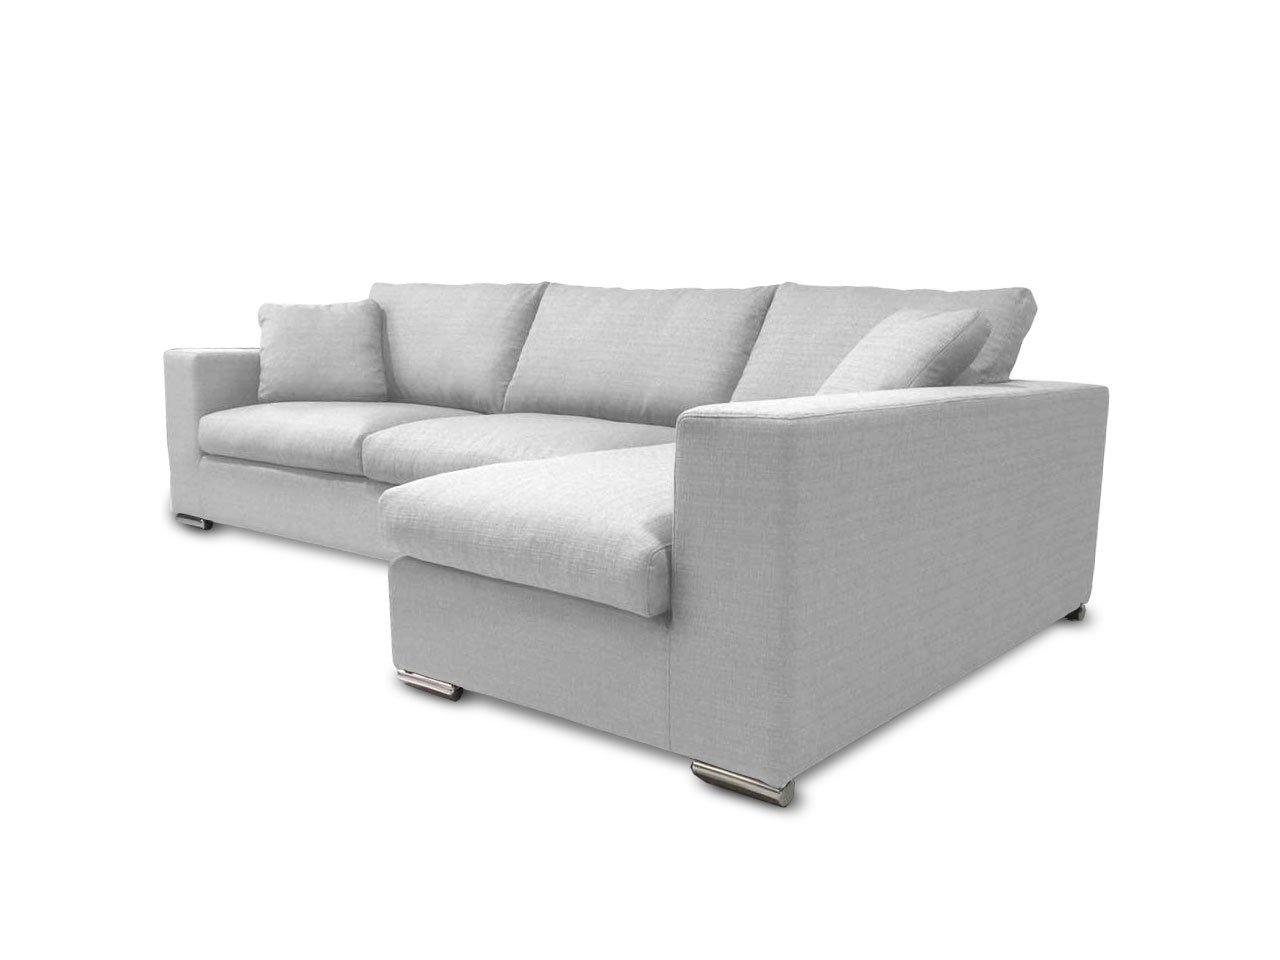 KMP Furniture Coleen Sectional Sofa & Right Chaise Lounge - White - Highly detailed upholstery and precisely stitched. Fade resistant fabric. High-density resiliency foam seats and back with sturdy spring system. - sofas-couches, living-room-furniture, living-room - 51qeXV3ILnL -